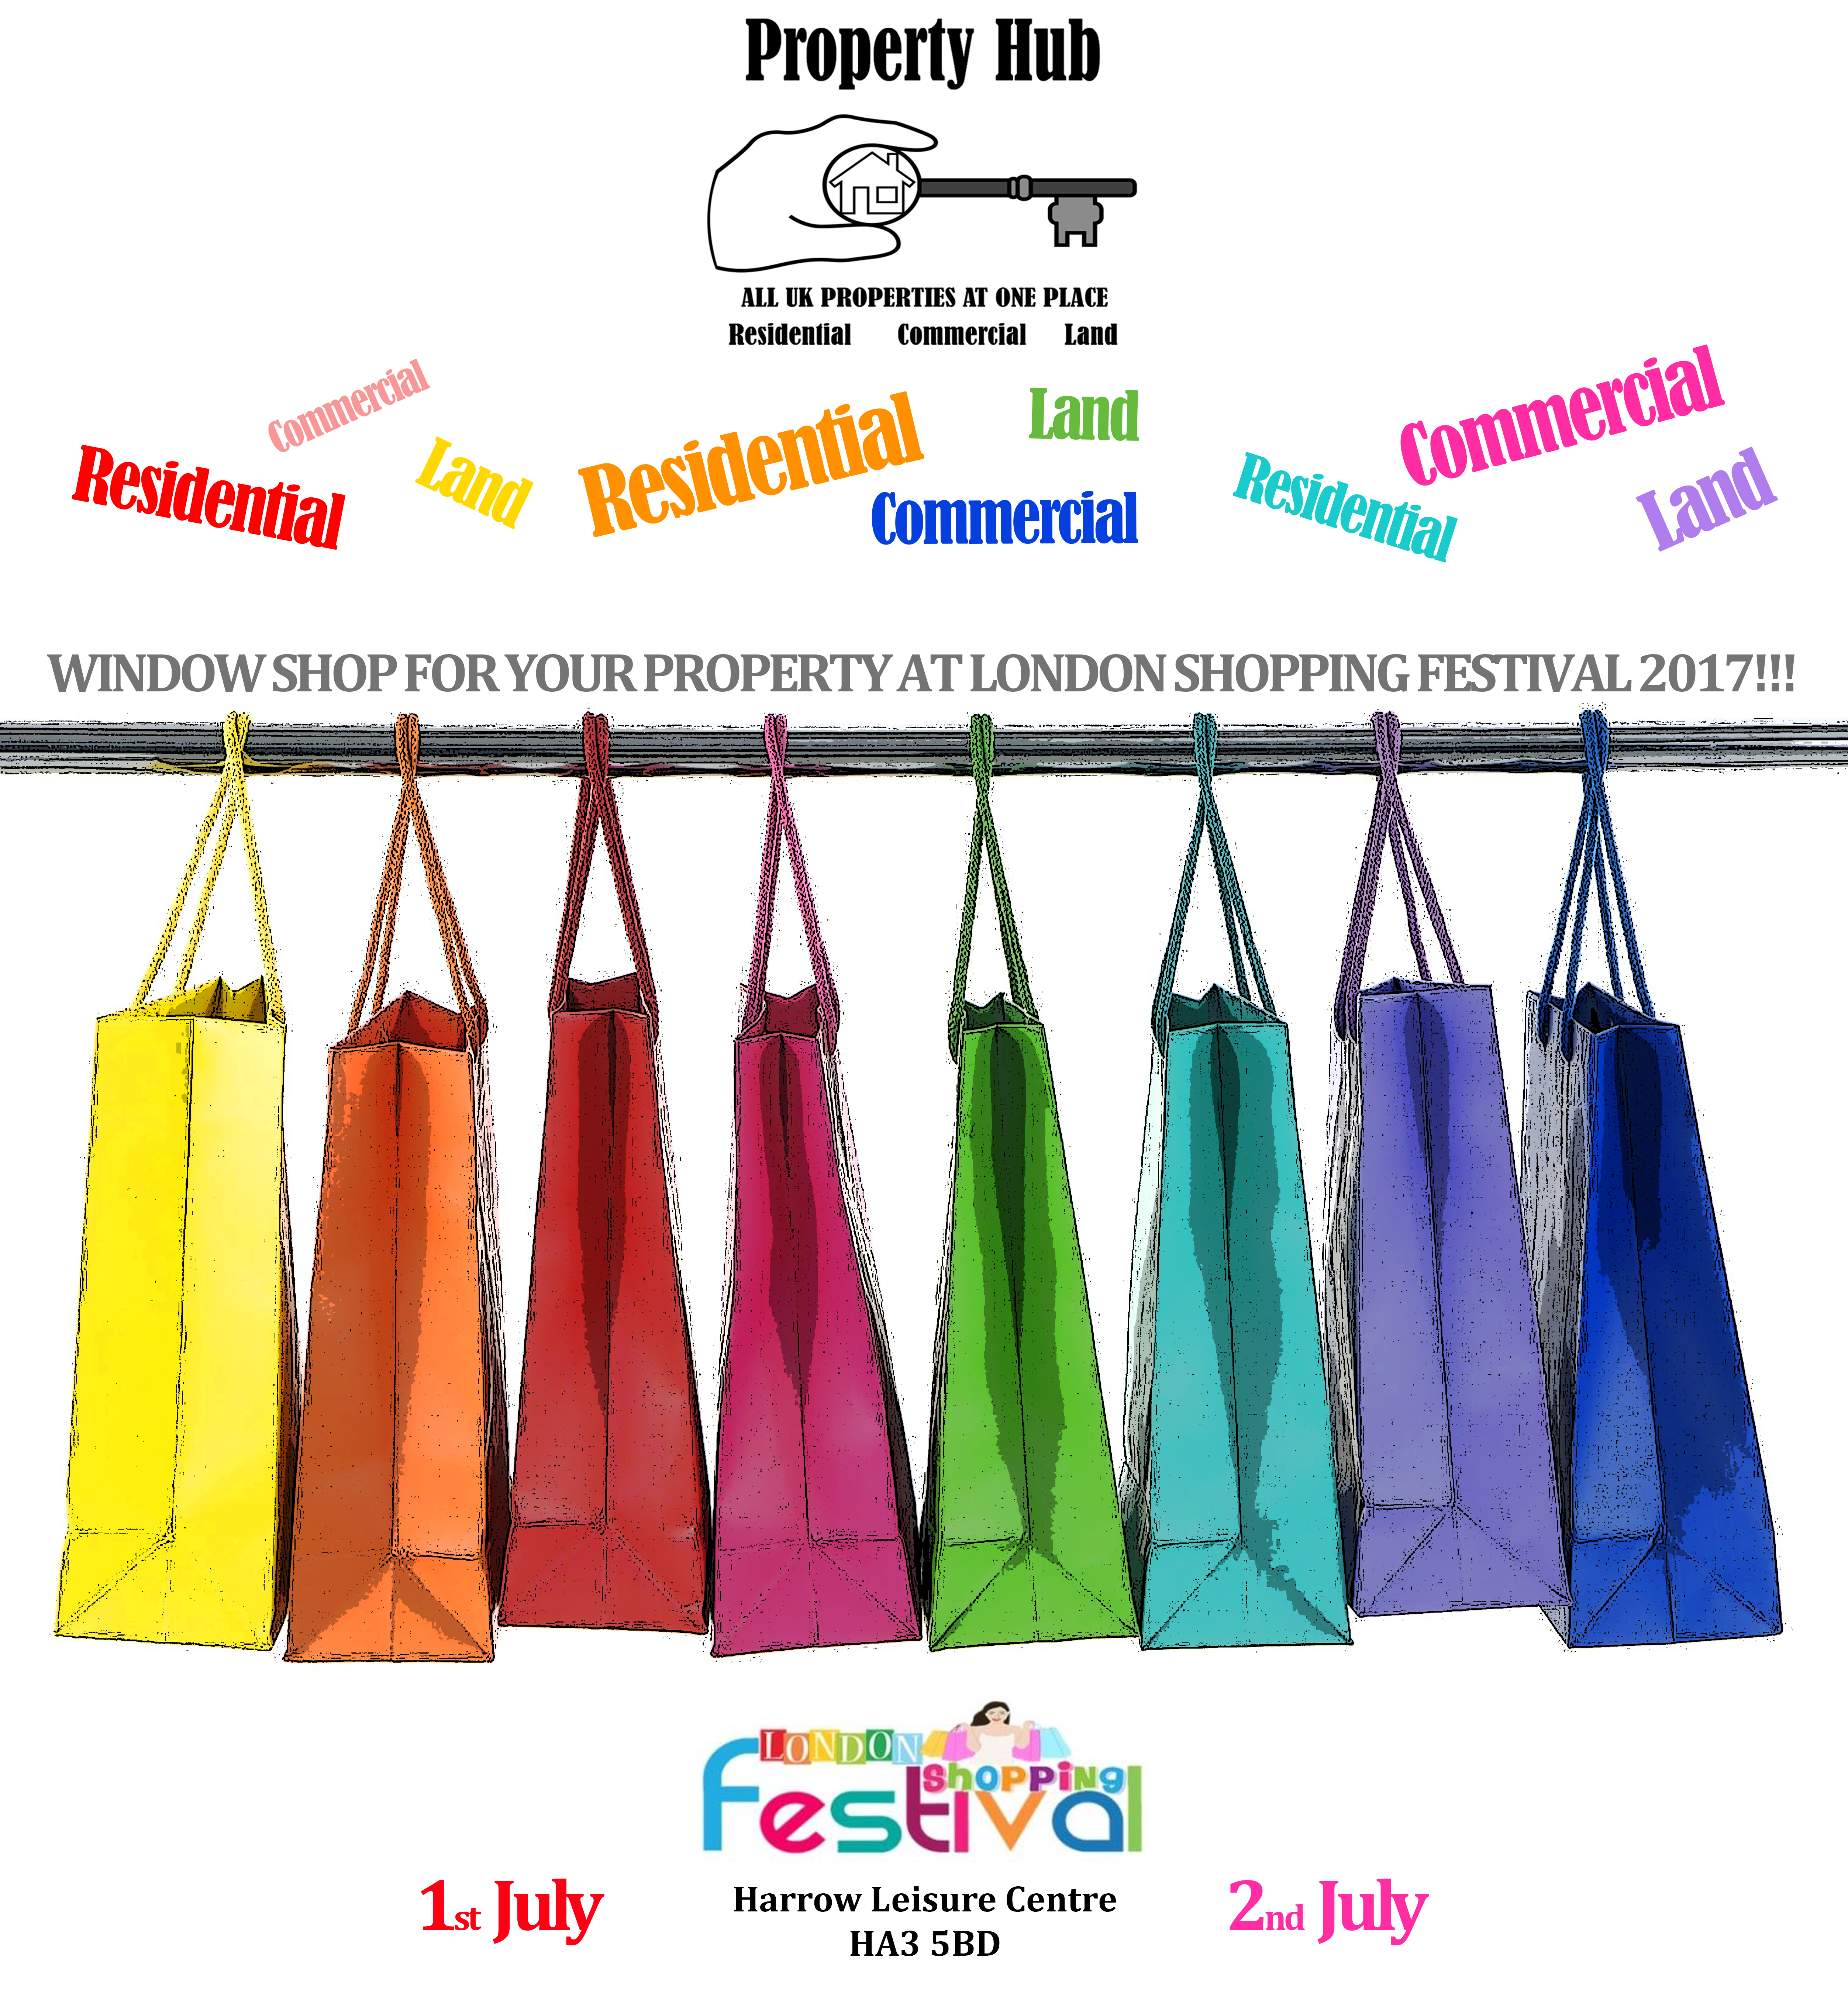 London Shopping Festival 1st and 2nd July 2017